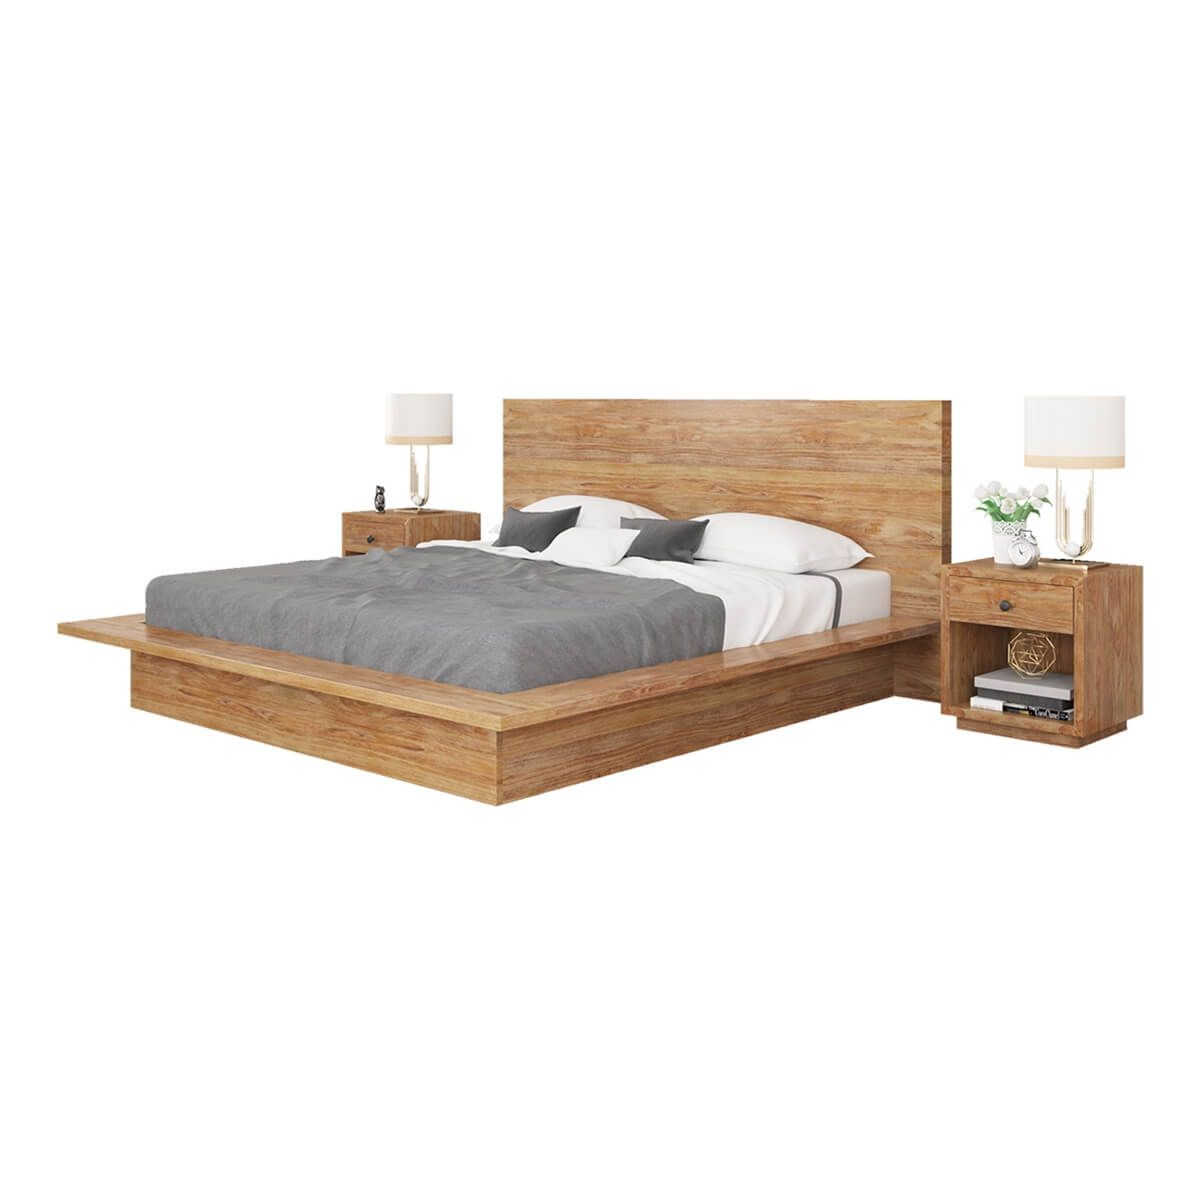 Tiffany 8 Drawer Bed Combining Comfort Functionaltiy And Etsy